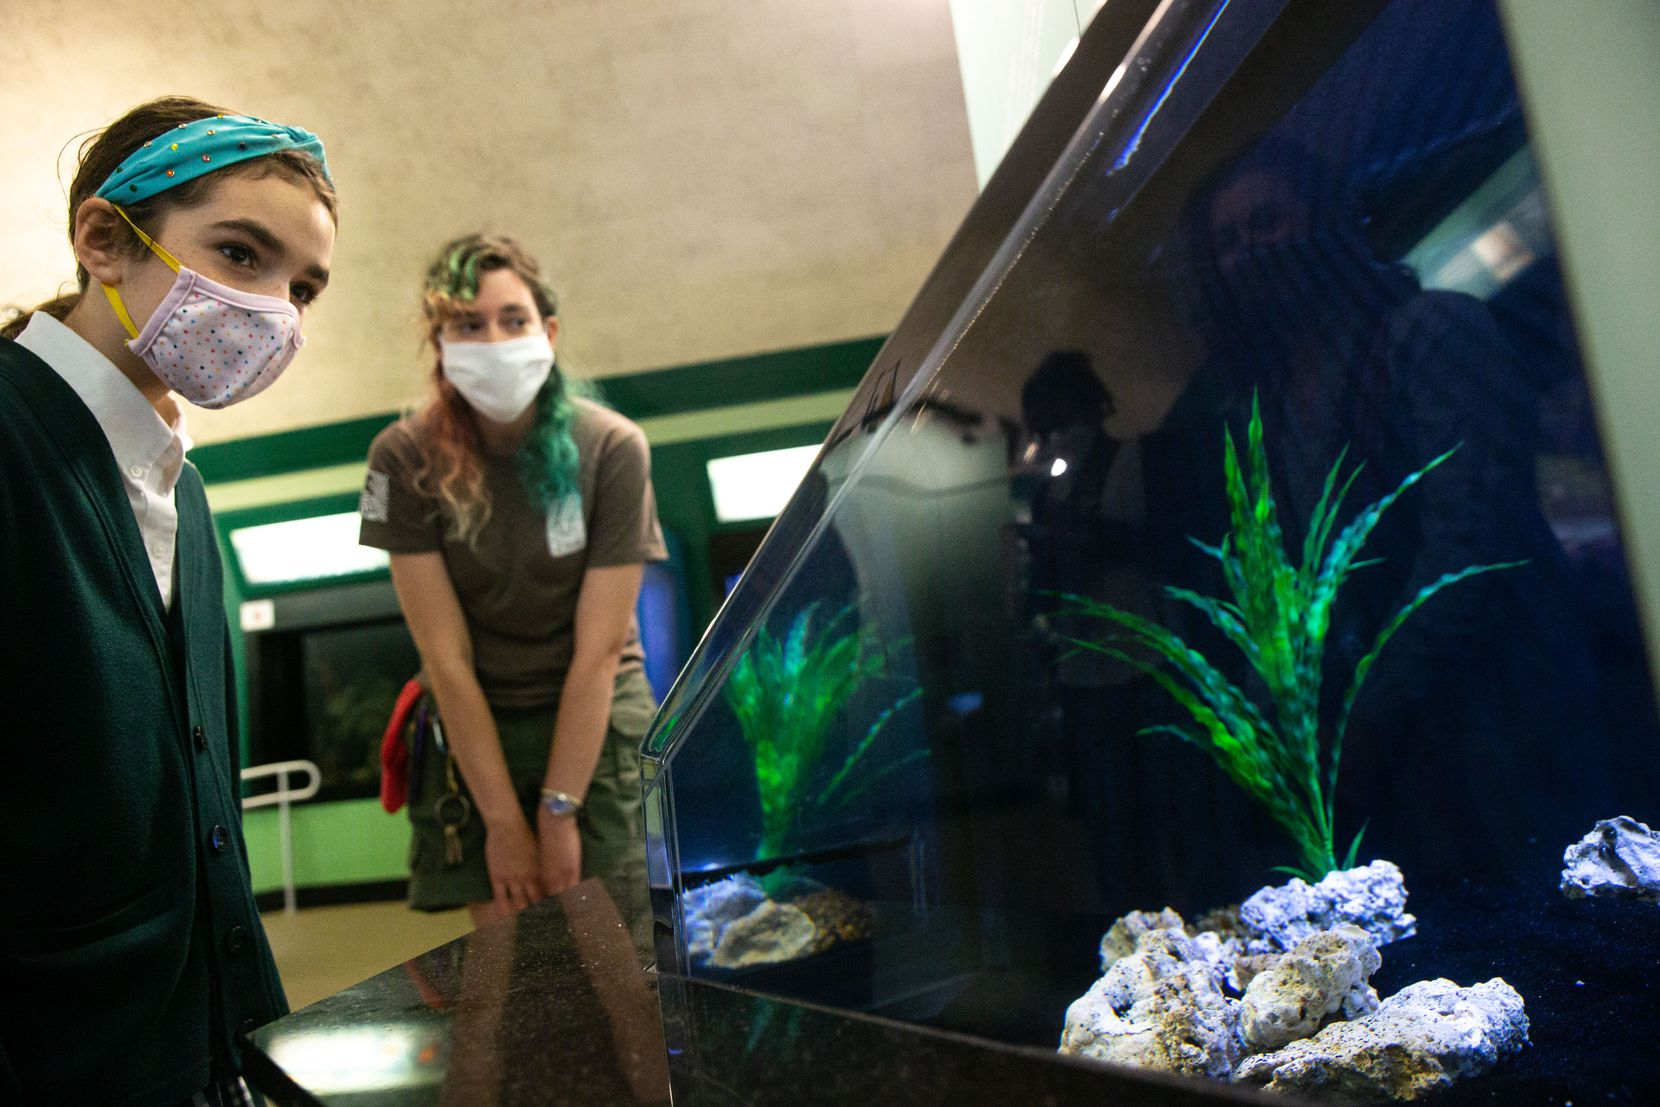 Margeaux Maurer (left), a fifth-grade student at The Hockaday School, and Laura Gratke, assistant supervisor, examined the cuttlefish exhibit at the Children's Aquarium at Fair Park in Dallas on Friday, Nov. 13, 2020. Maurer was invited by Dallas Zoo staff to visit the aquarium after she wrote a letter to express her sadness at the aquarium's closing and ask that it reopen. Shortly after, City Council member Adam Bazaldua identified unused city bonds to keep the aquarium afloat for two more years, but it's still unclear whether or not the venue will reopen any time soon. (Lynda M. Gonz�lez/The Dallas Morning News)